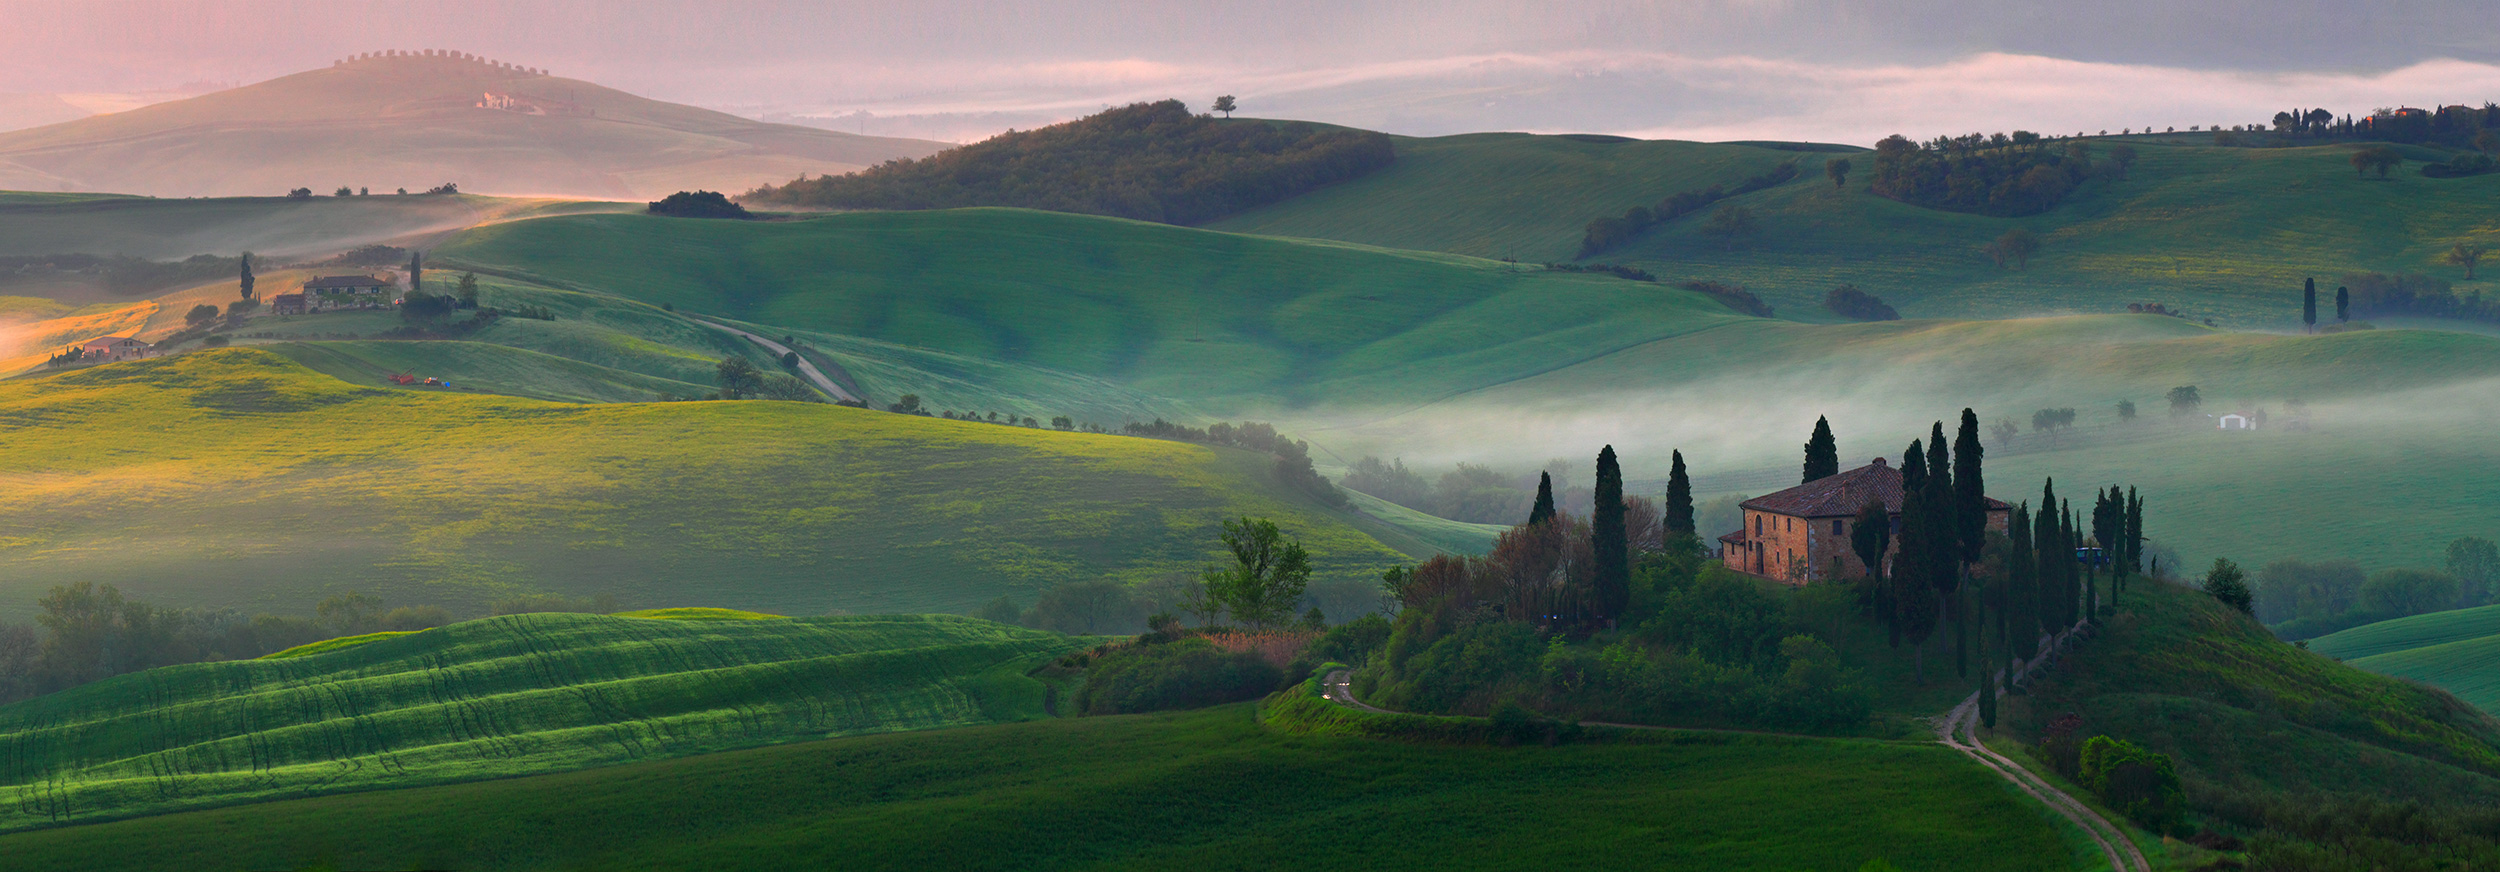 Belvedere sunrise - San Quirico d'Orcia, Tuscany, Italy